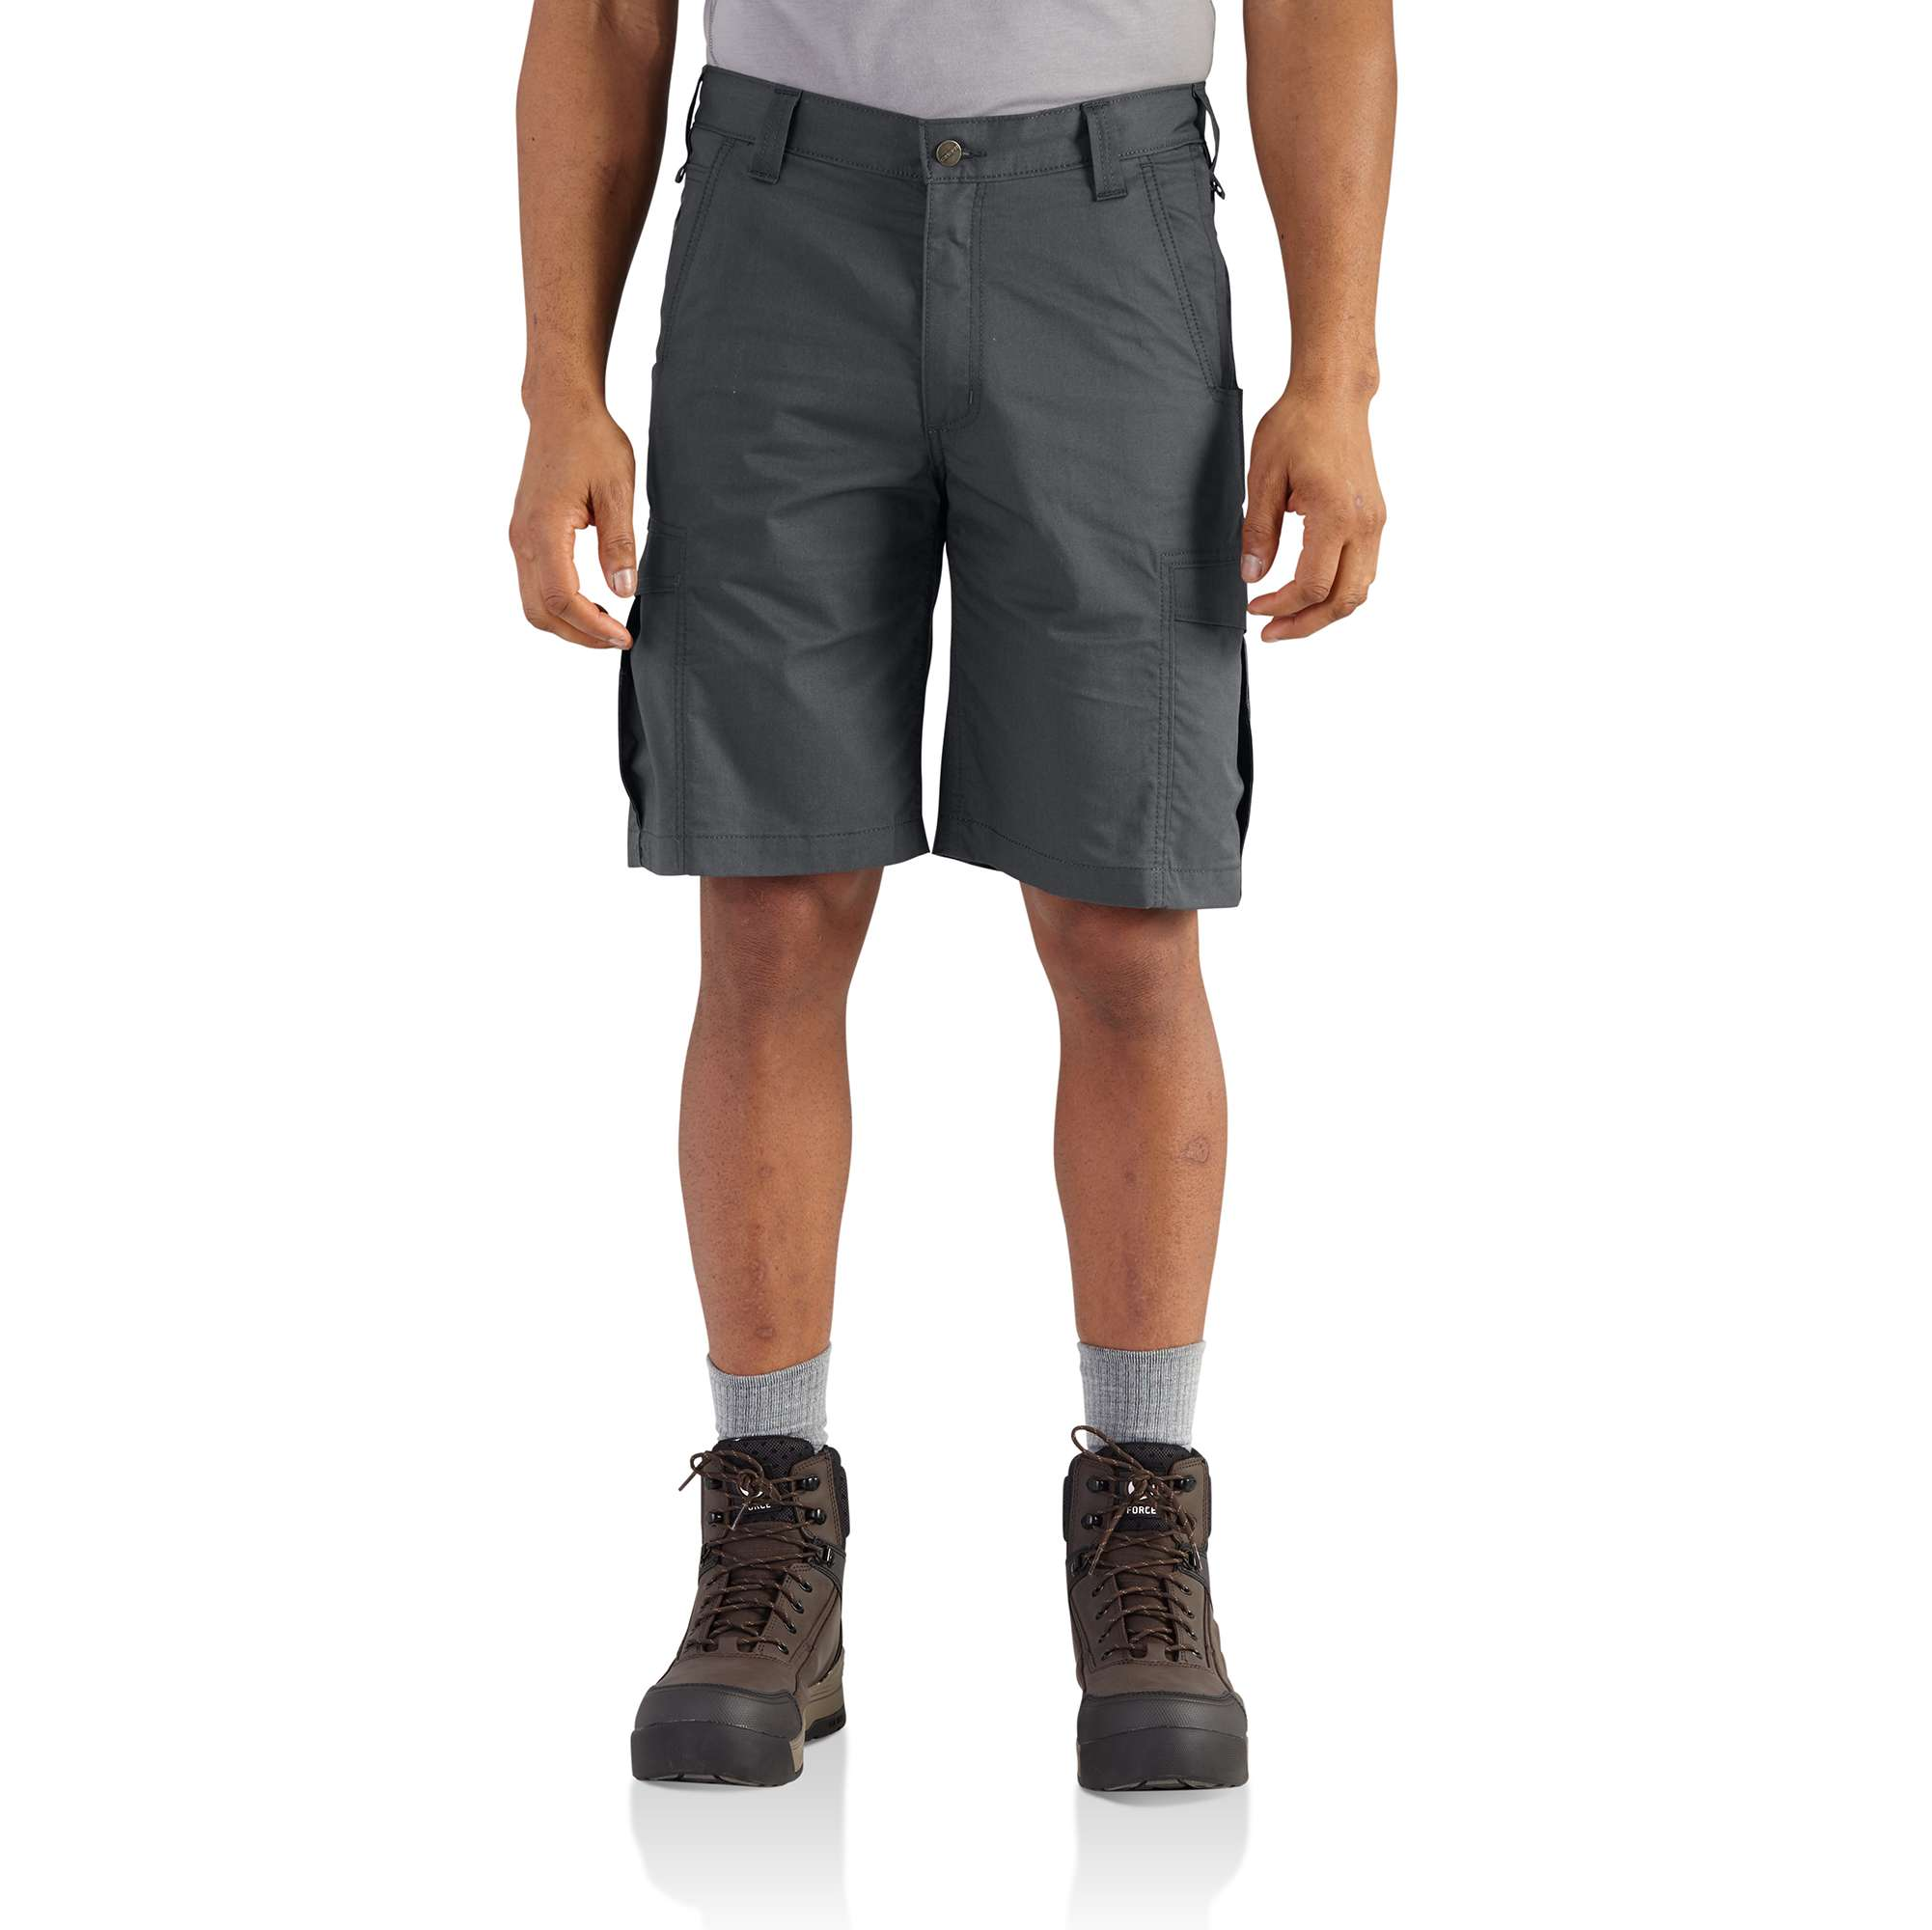 Carhartt Force Extremes Cargo Short